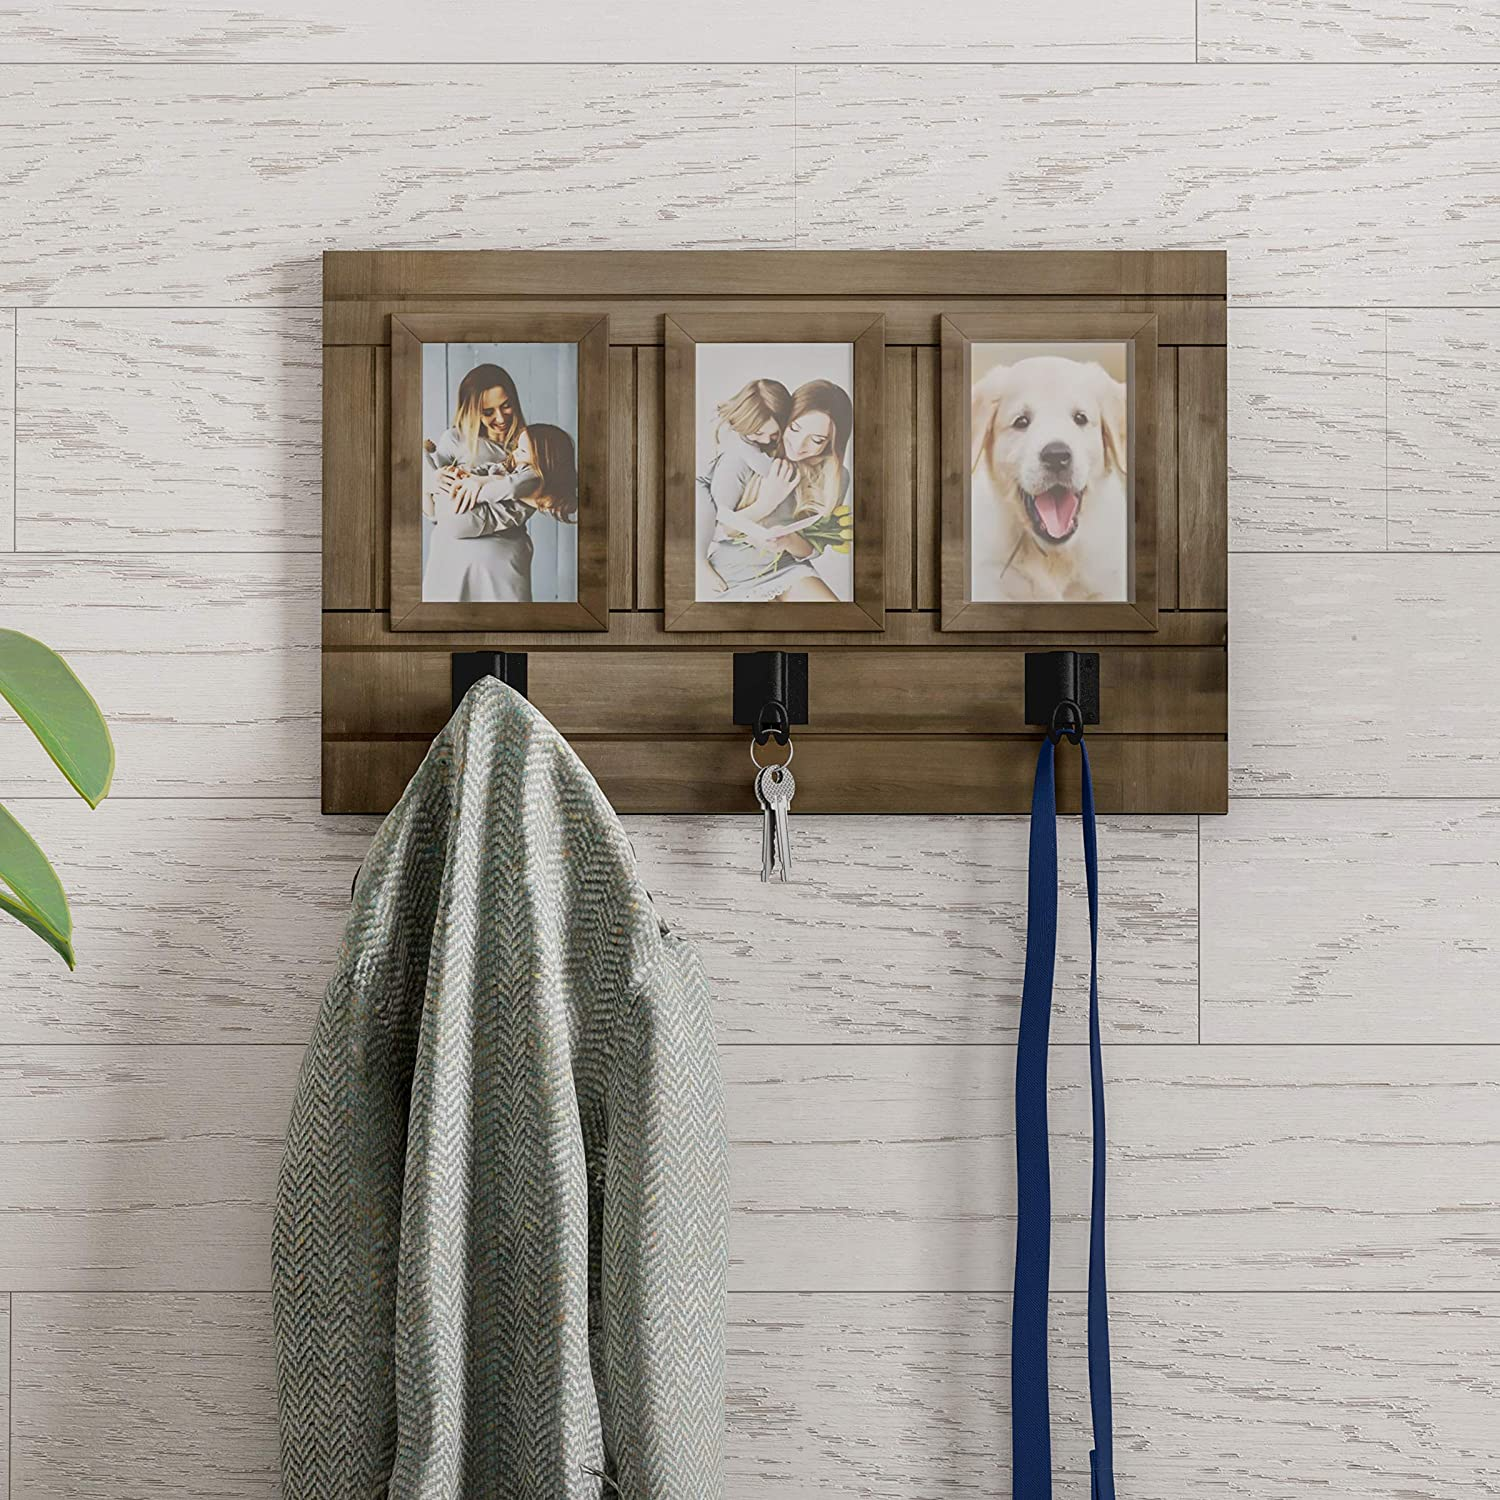 Home Max 54% OFF Max 51% OFF Collage with 3 Hanging Hooks-Wall Decor Frame Mounted Photo